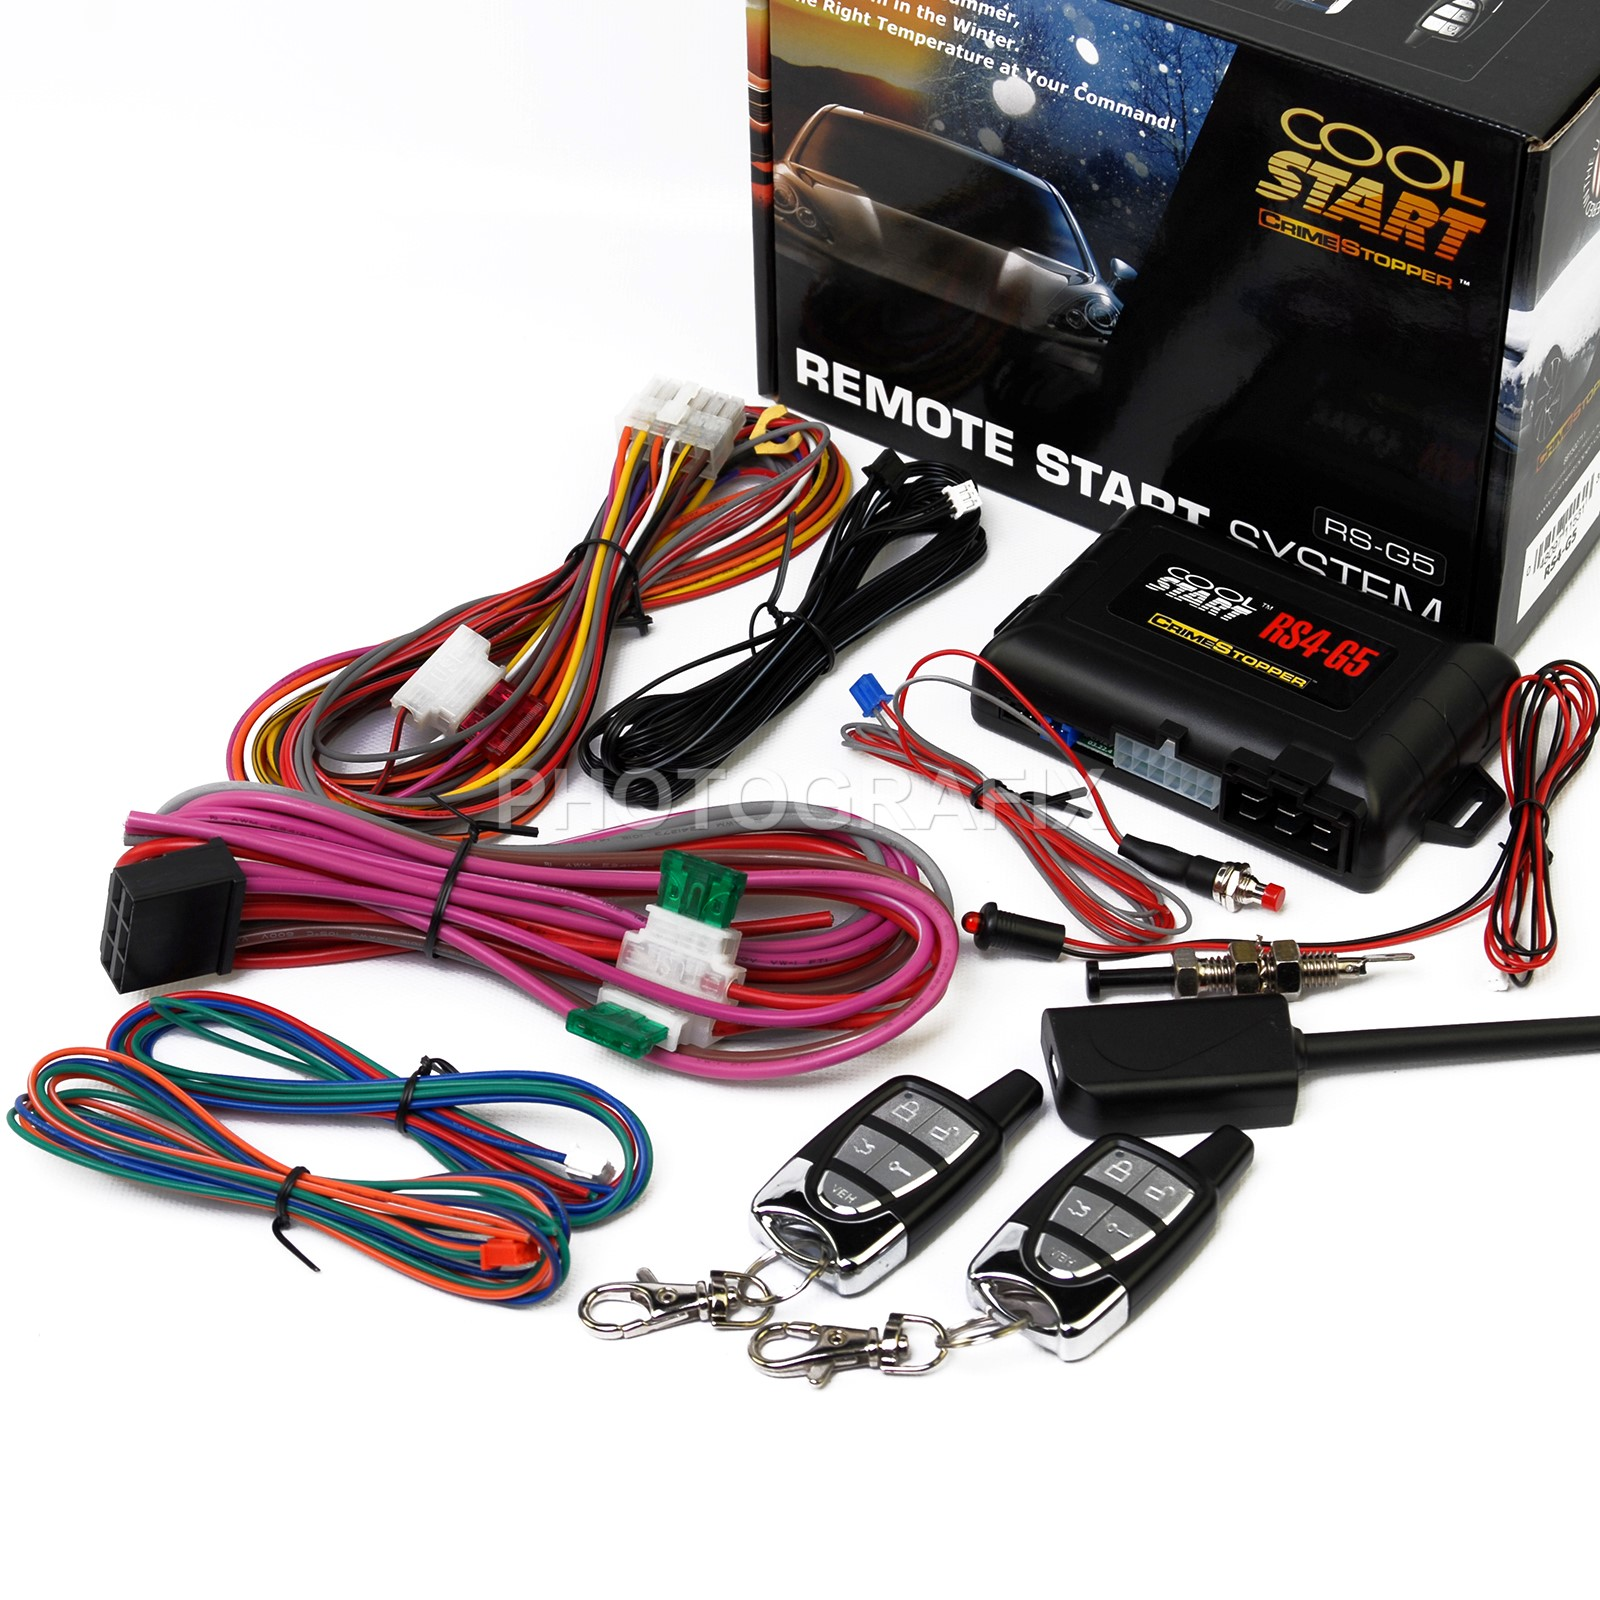 medium resolution of crimestopper rs4 g5 1 way remote start keyless entry system with trunk release